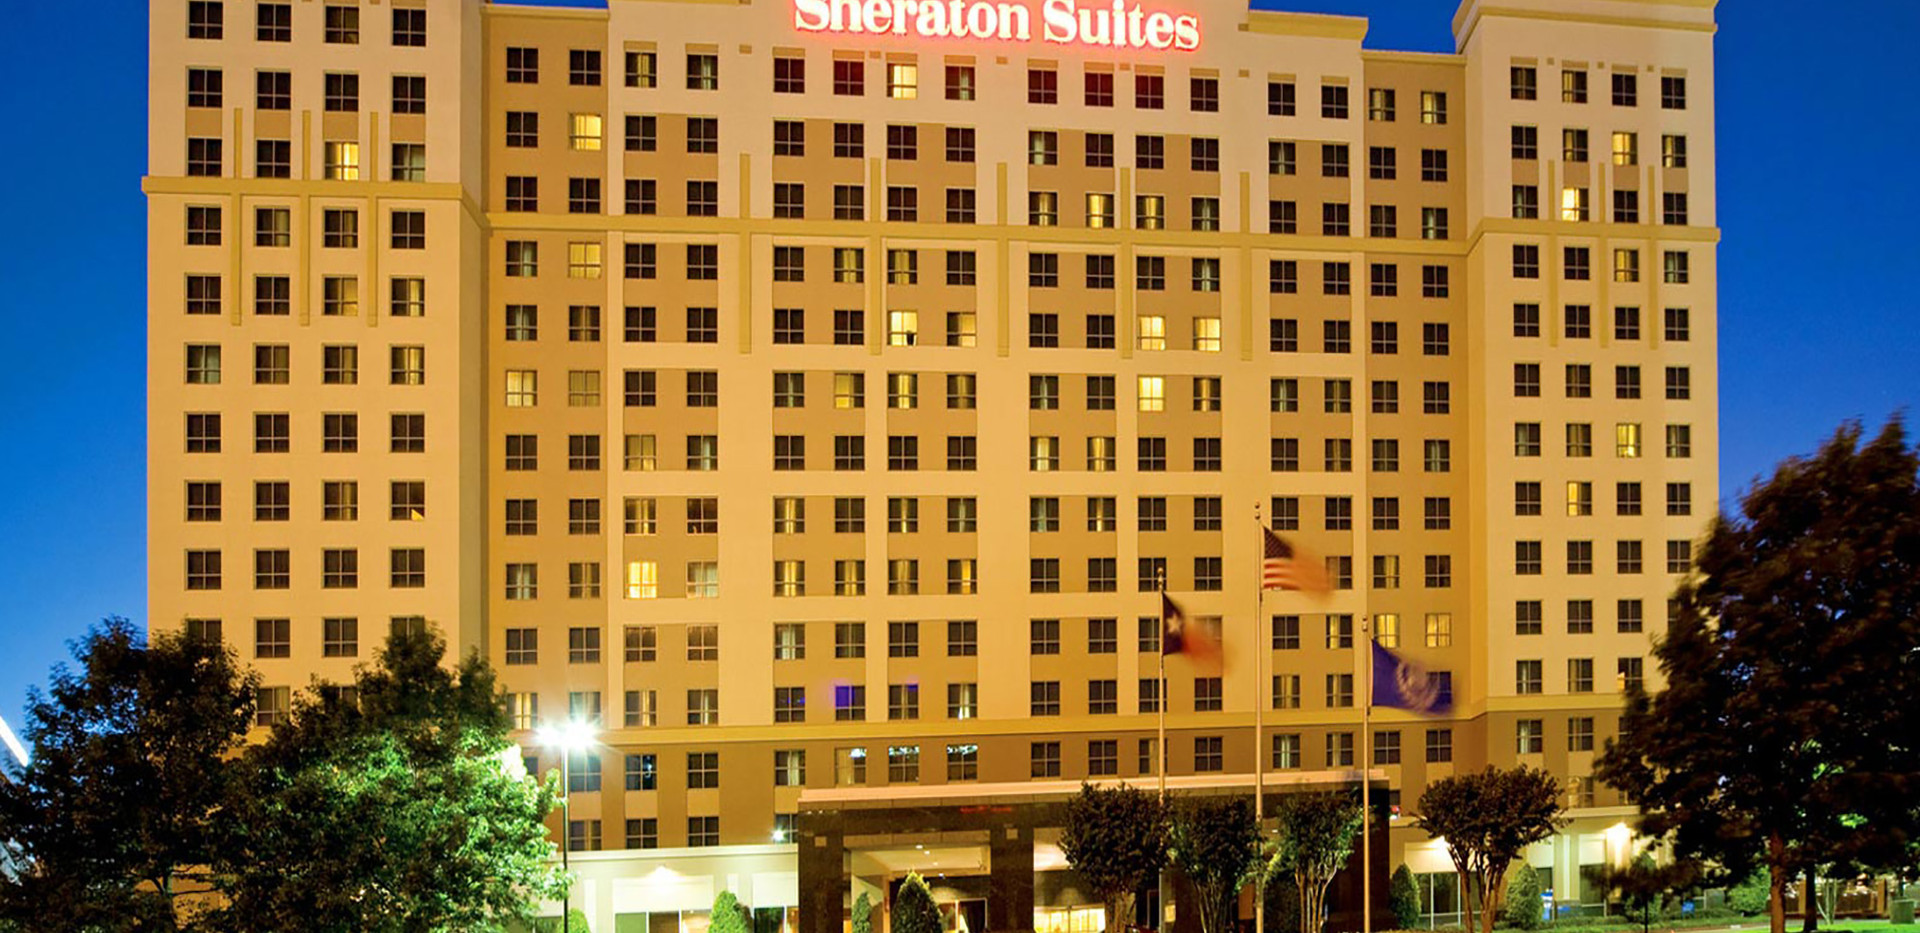 Sheraton Suites Houston -Near The Gallaria